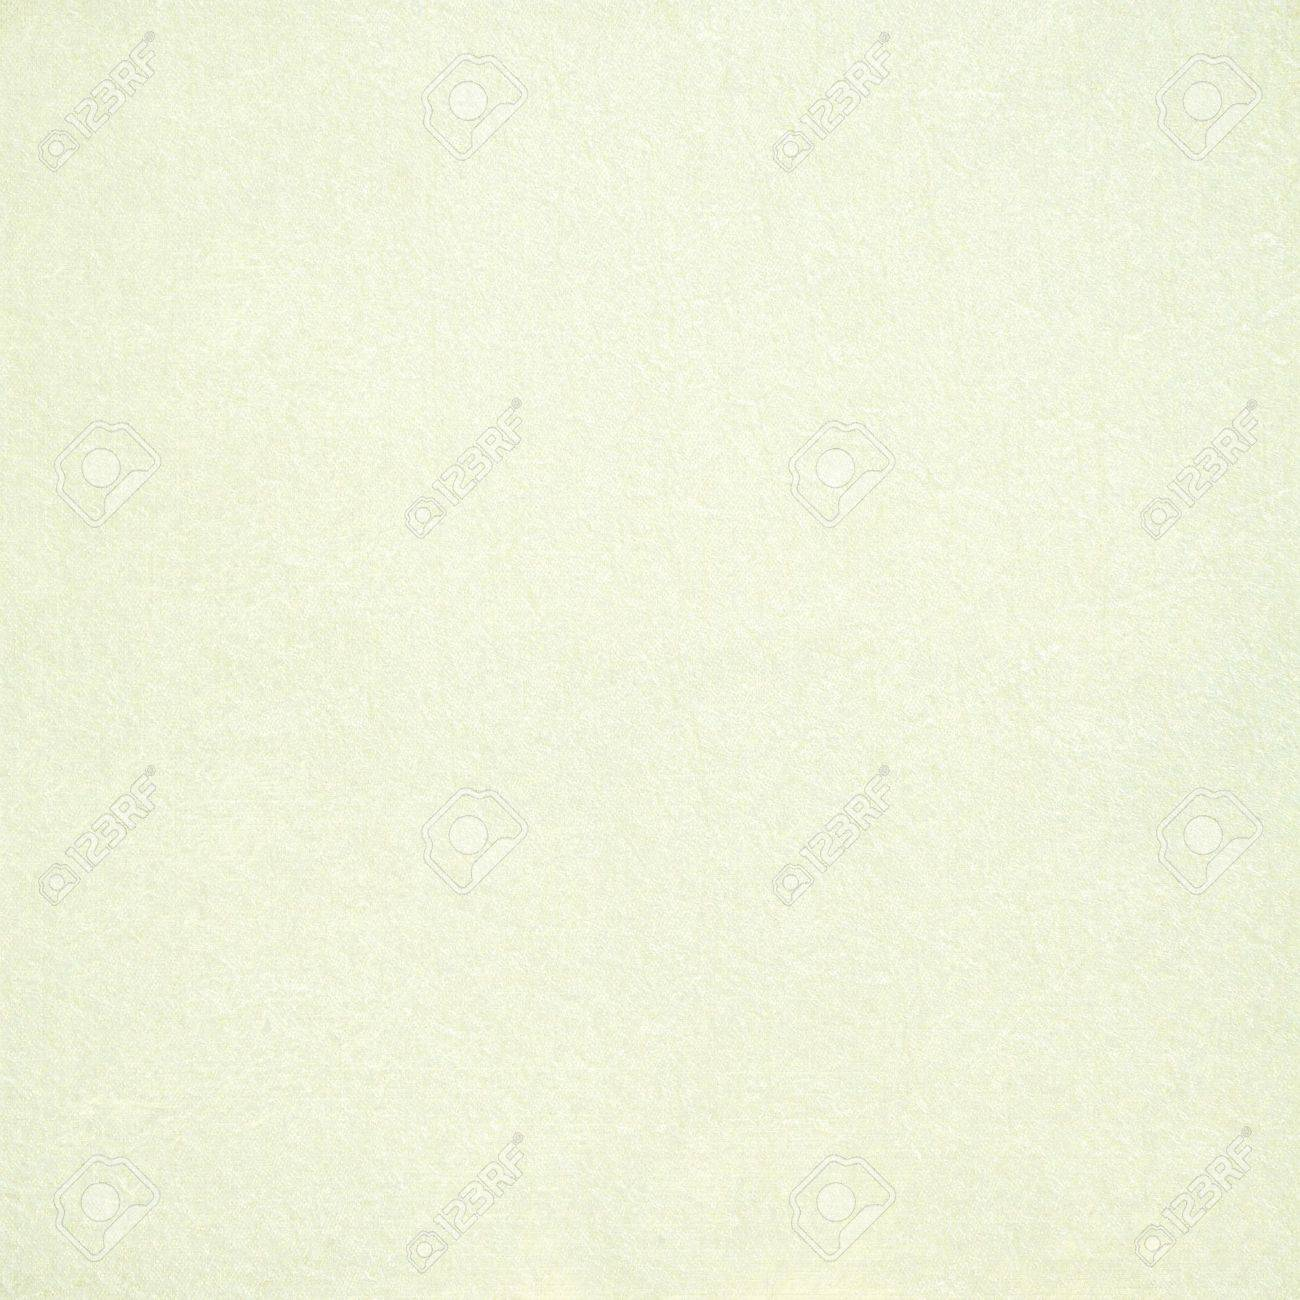 Simple White Paper with Light Weave and Text Space Stock Photo - 8469272